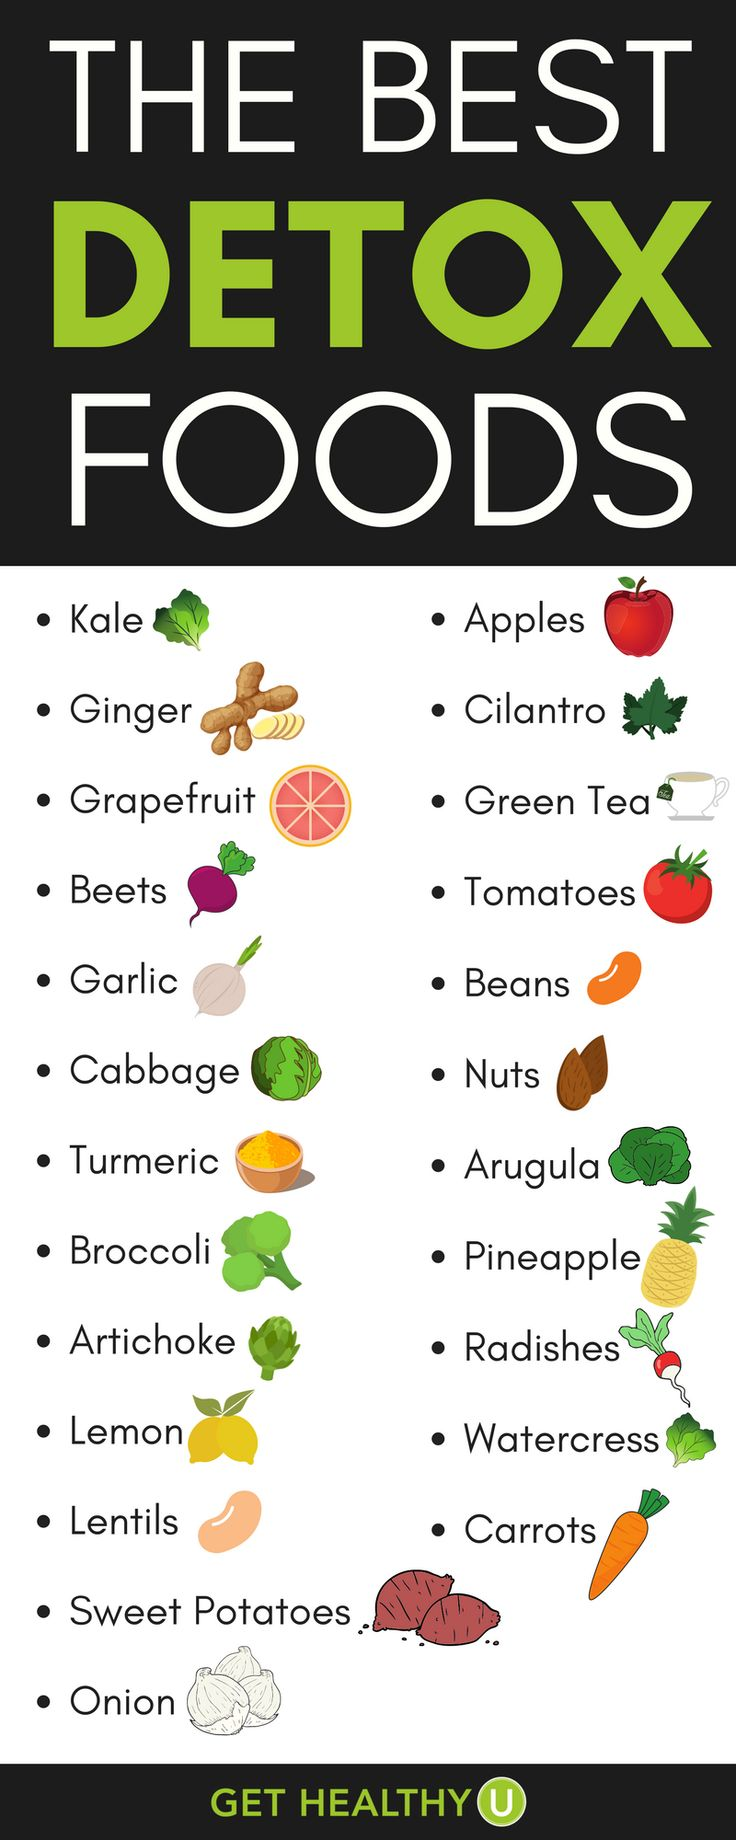 Don't fall for the pills and potions; check out the best foods to naturally detoxify your body and delicious recipes to incorporate them! #BodyDetoxFoods